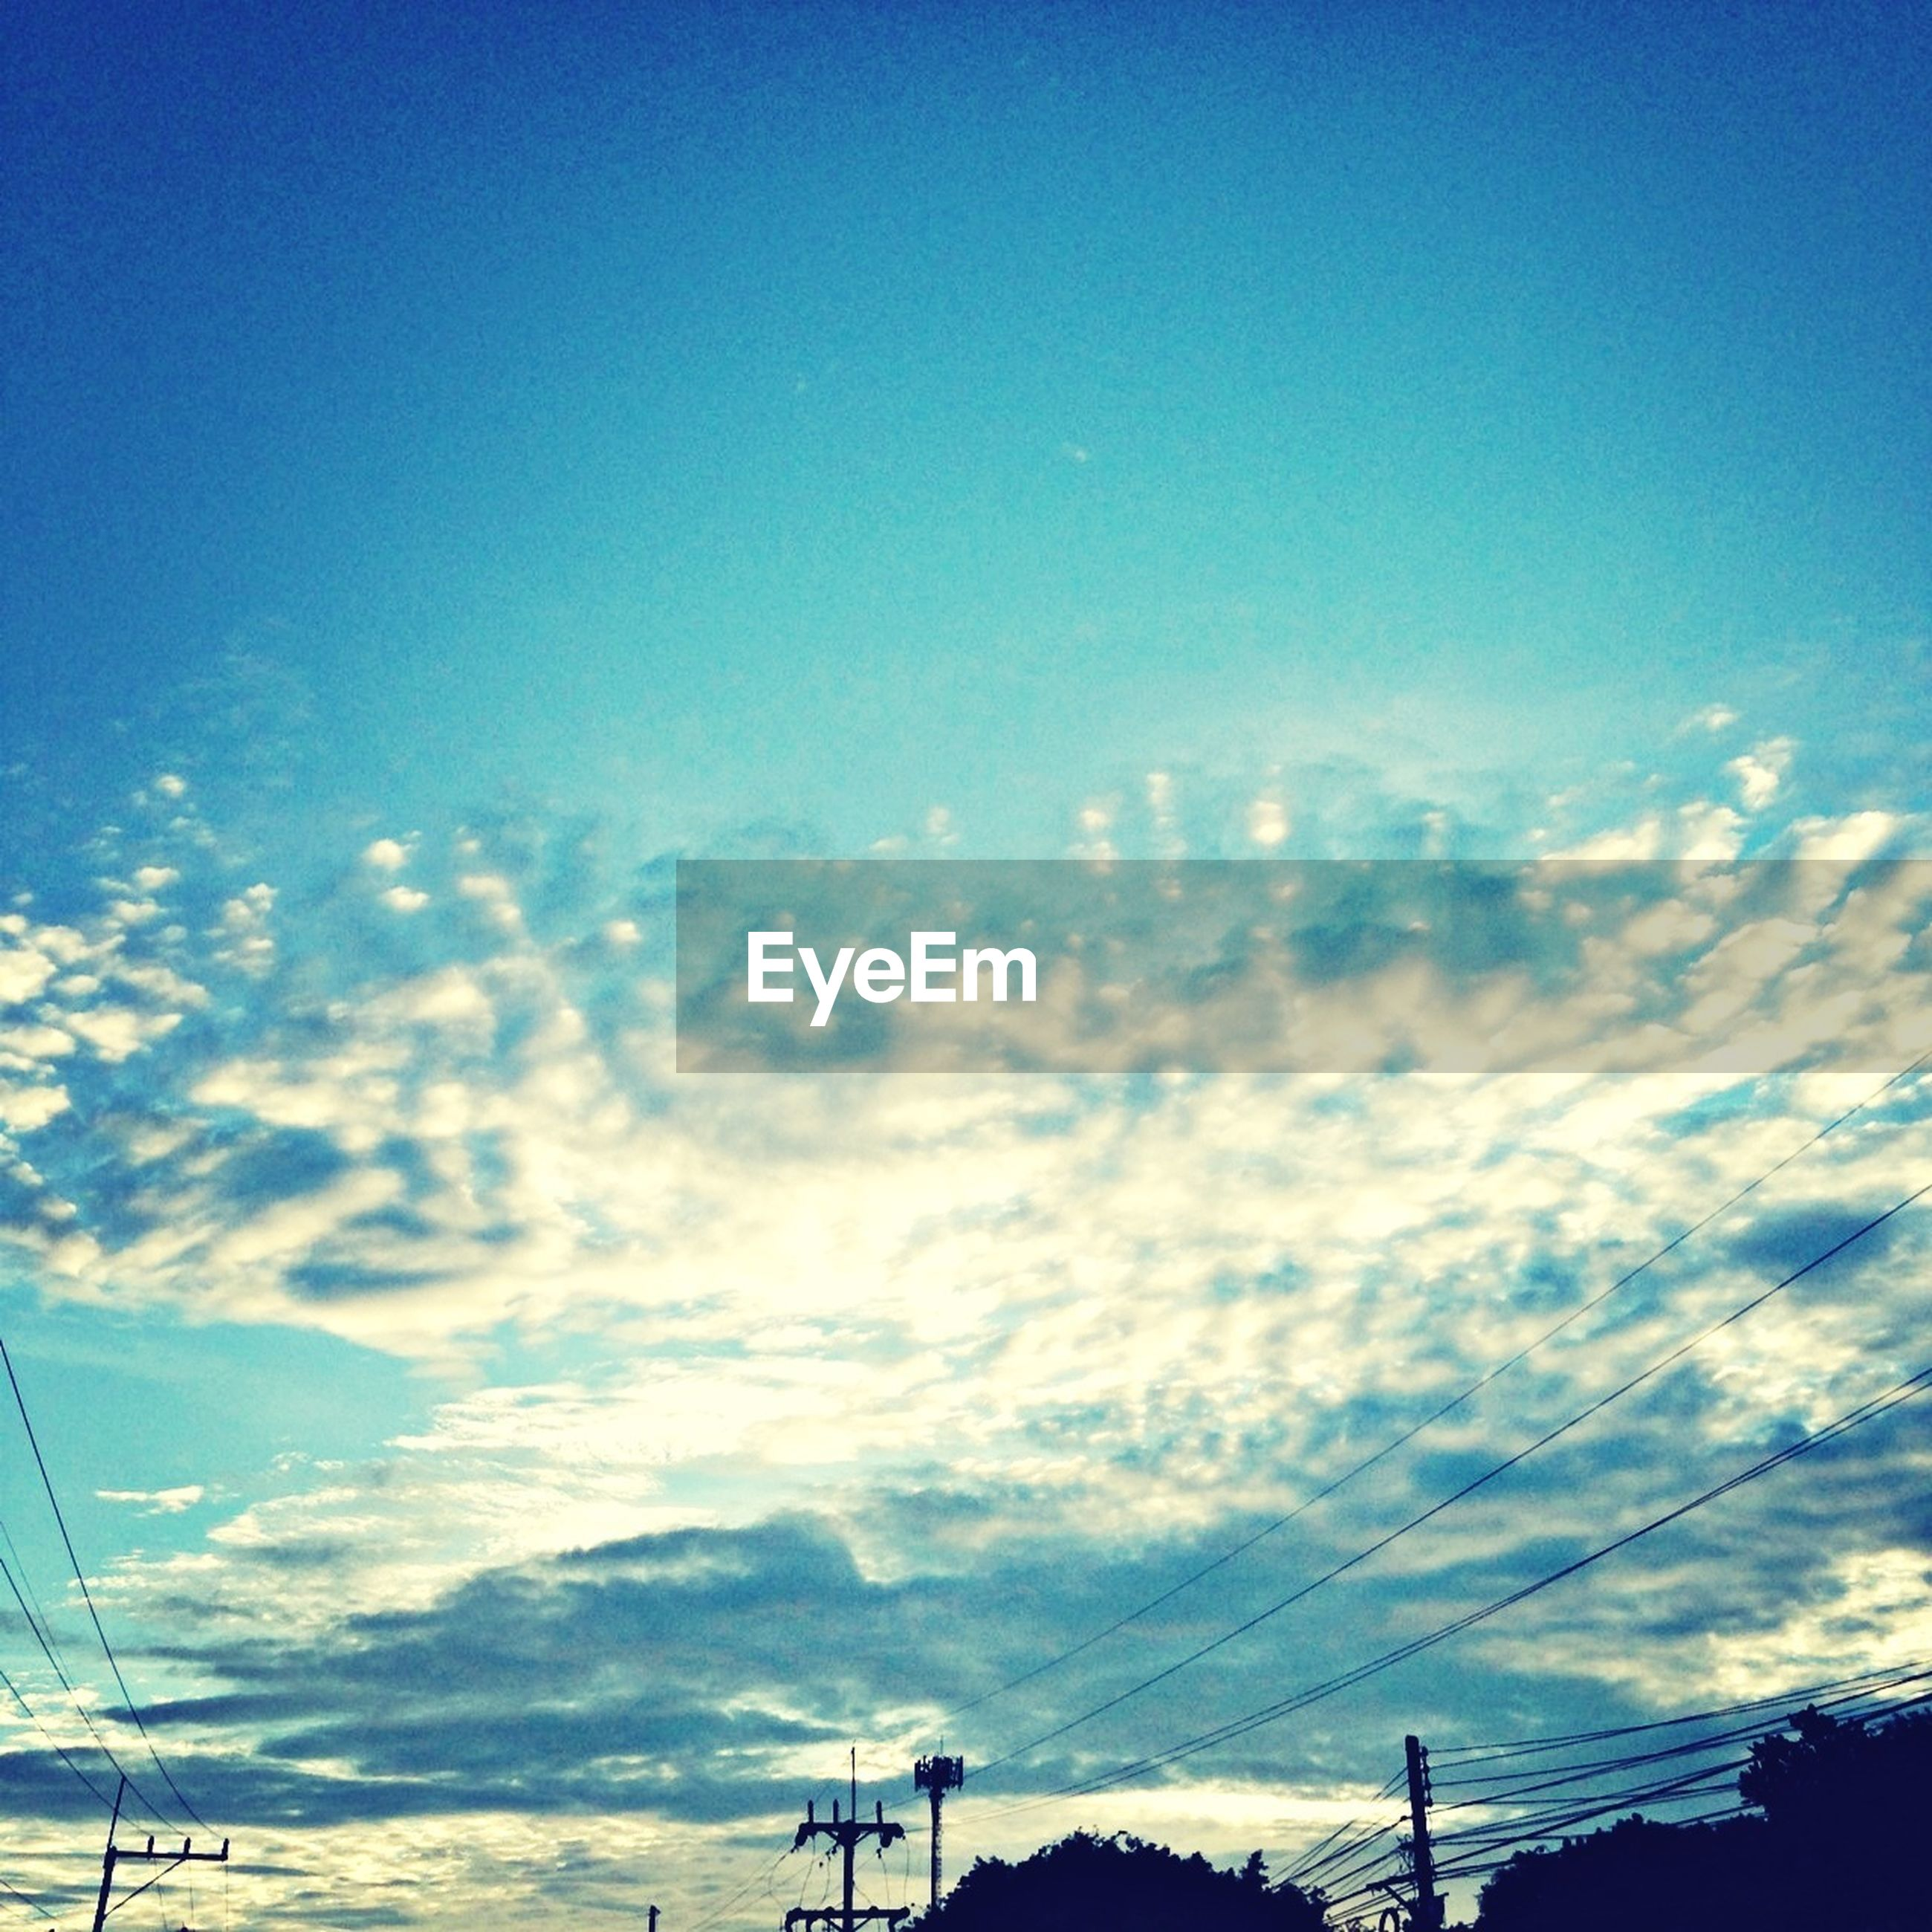 sky, power line, blue, electricity pylon, low angle view, cloud - sky, electricity, silhouette, power supply, tranquility, beauty in nature, scenics, sunset, connection, tranquil scene, nature, cloud, cable, outdoors, no people